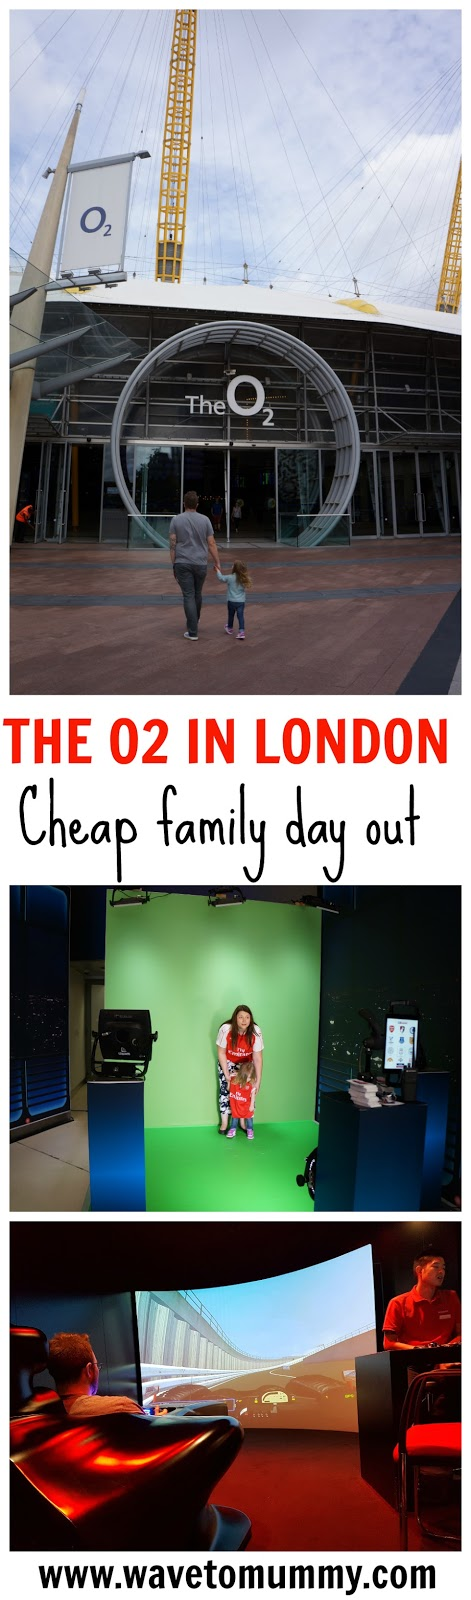 A fun (and cheap) family day out in London - at The O2. A great place to spend a rainy day in London is The O2. There are several cheap and free activities for children, such as film studios and virtual car driving, and several inexpensive restaurants to choose from. Check my top tips on what to do on a rainy day in London, or when you want to have a cheap family day out in London, UK.